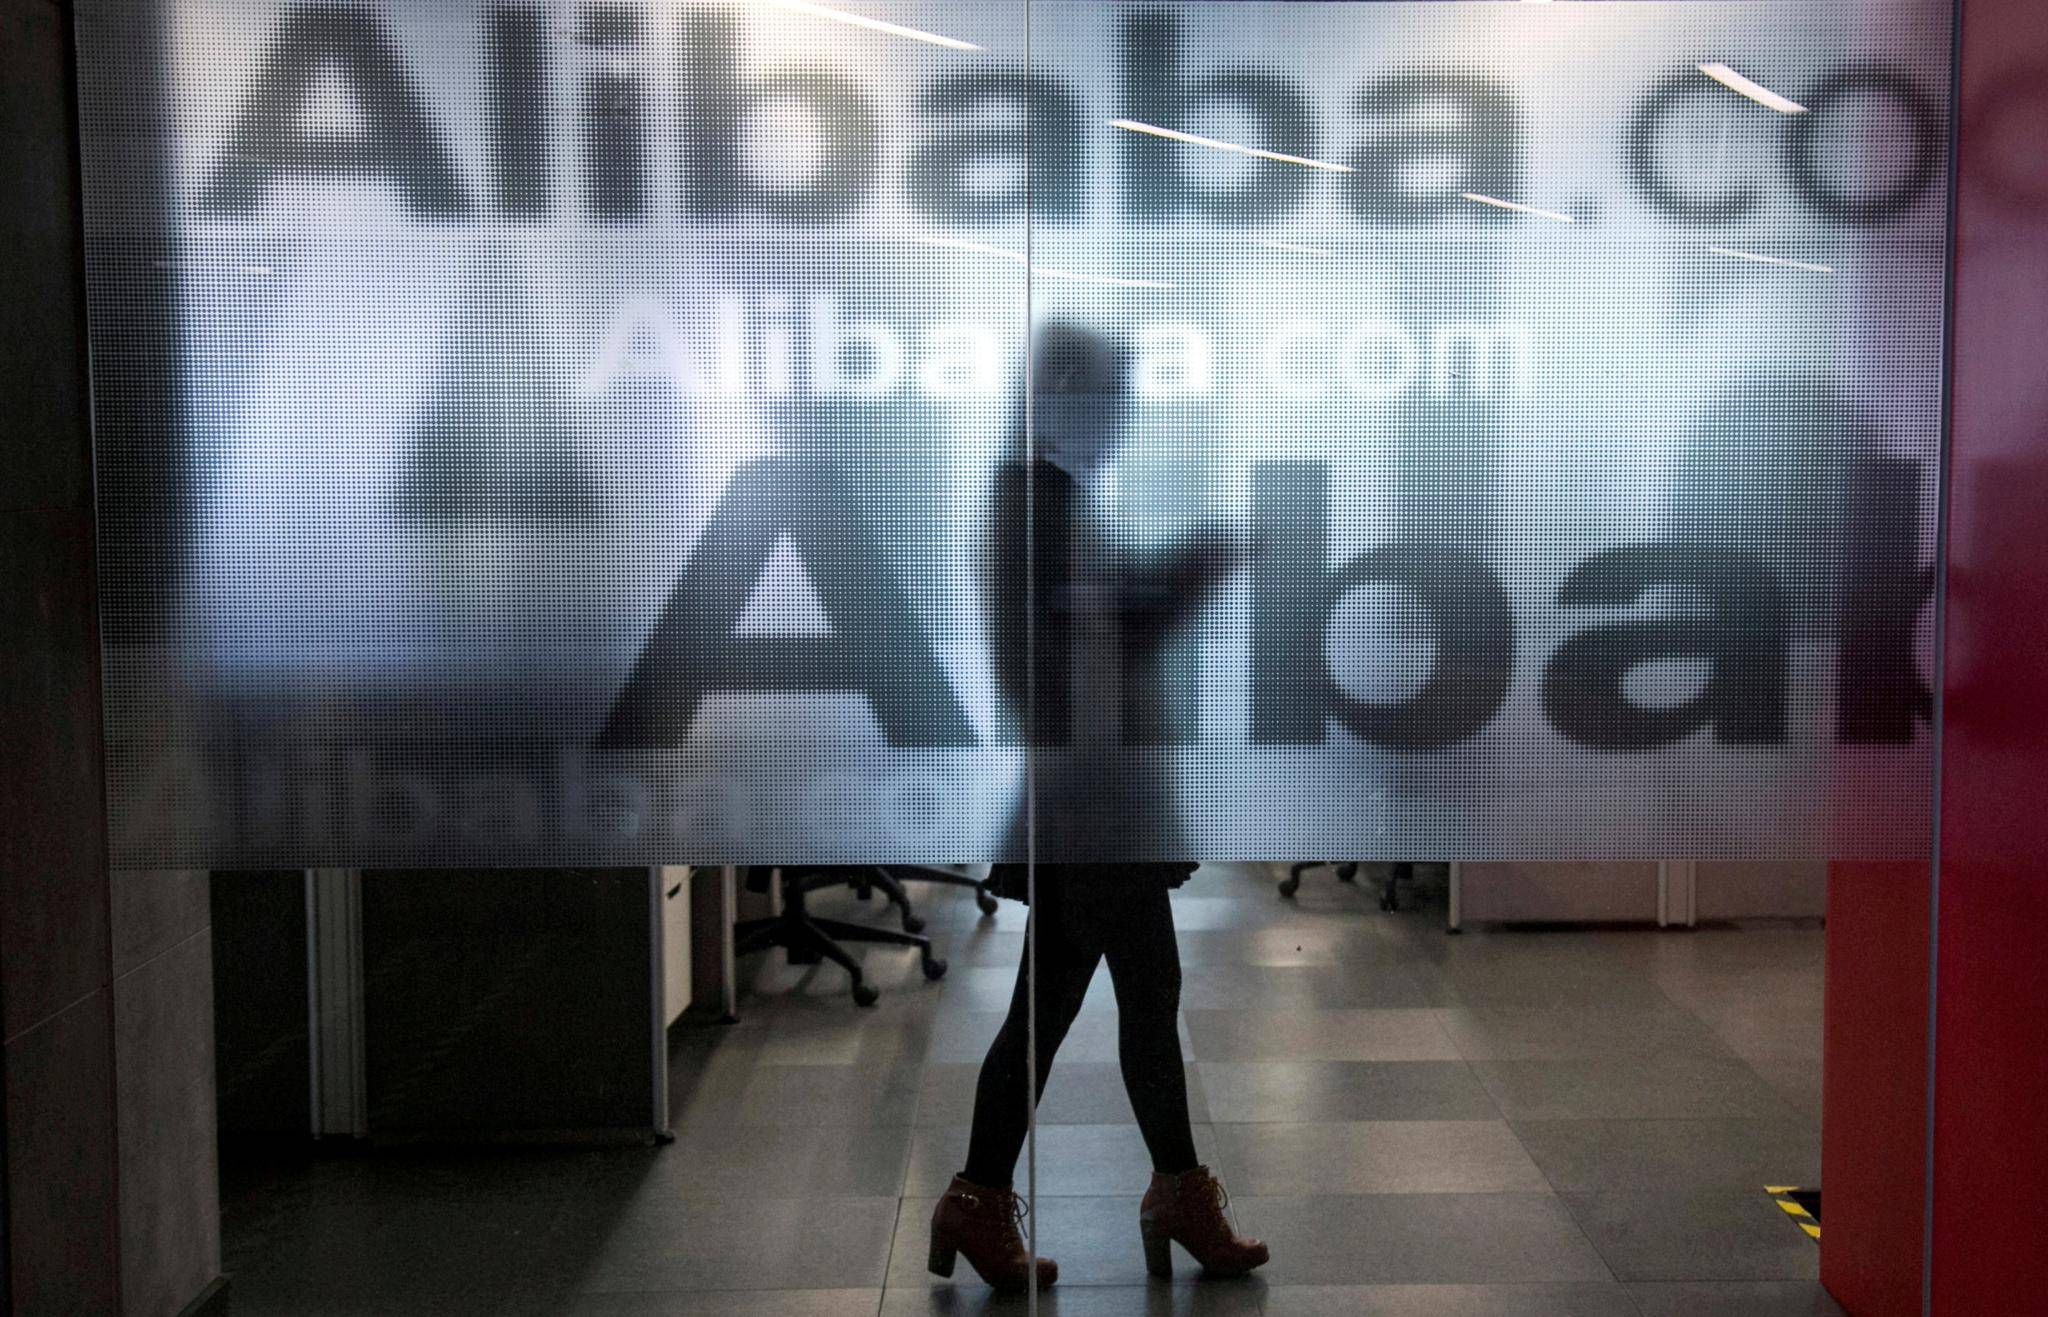 3020c4518 Why Alibaba s U.S. ambitions are likely to end in failure - The Globe and  Mail